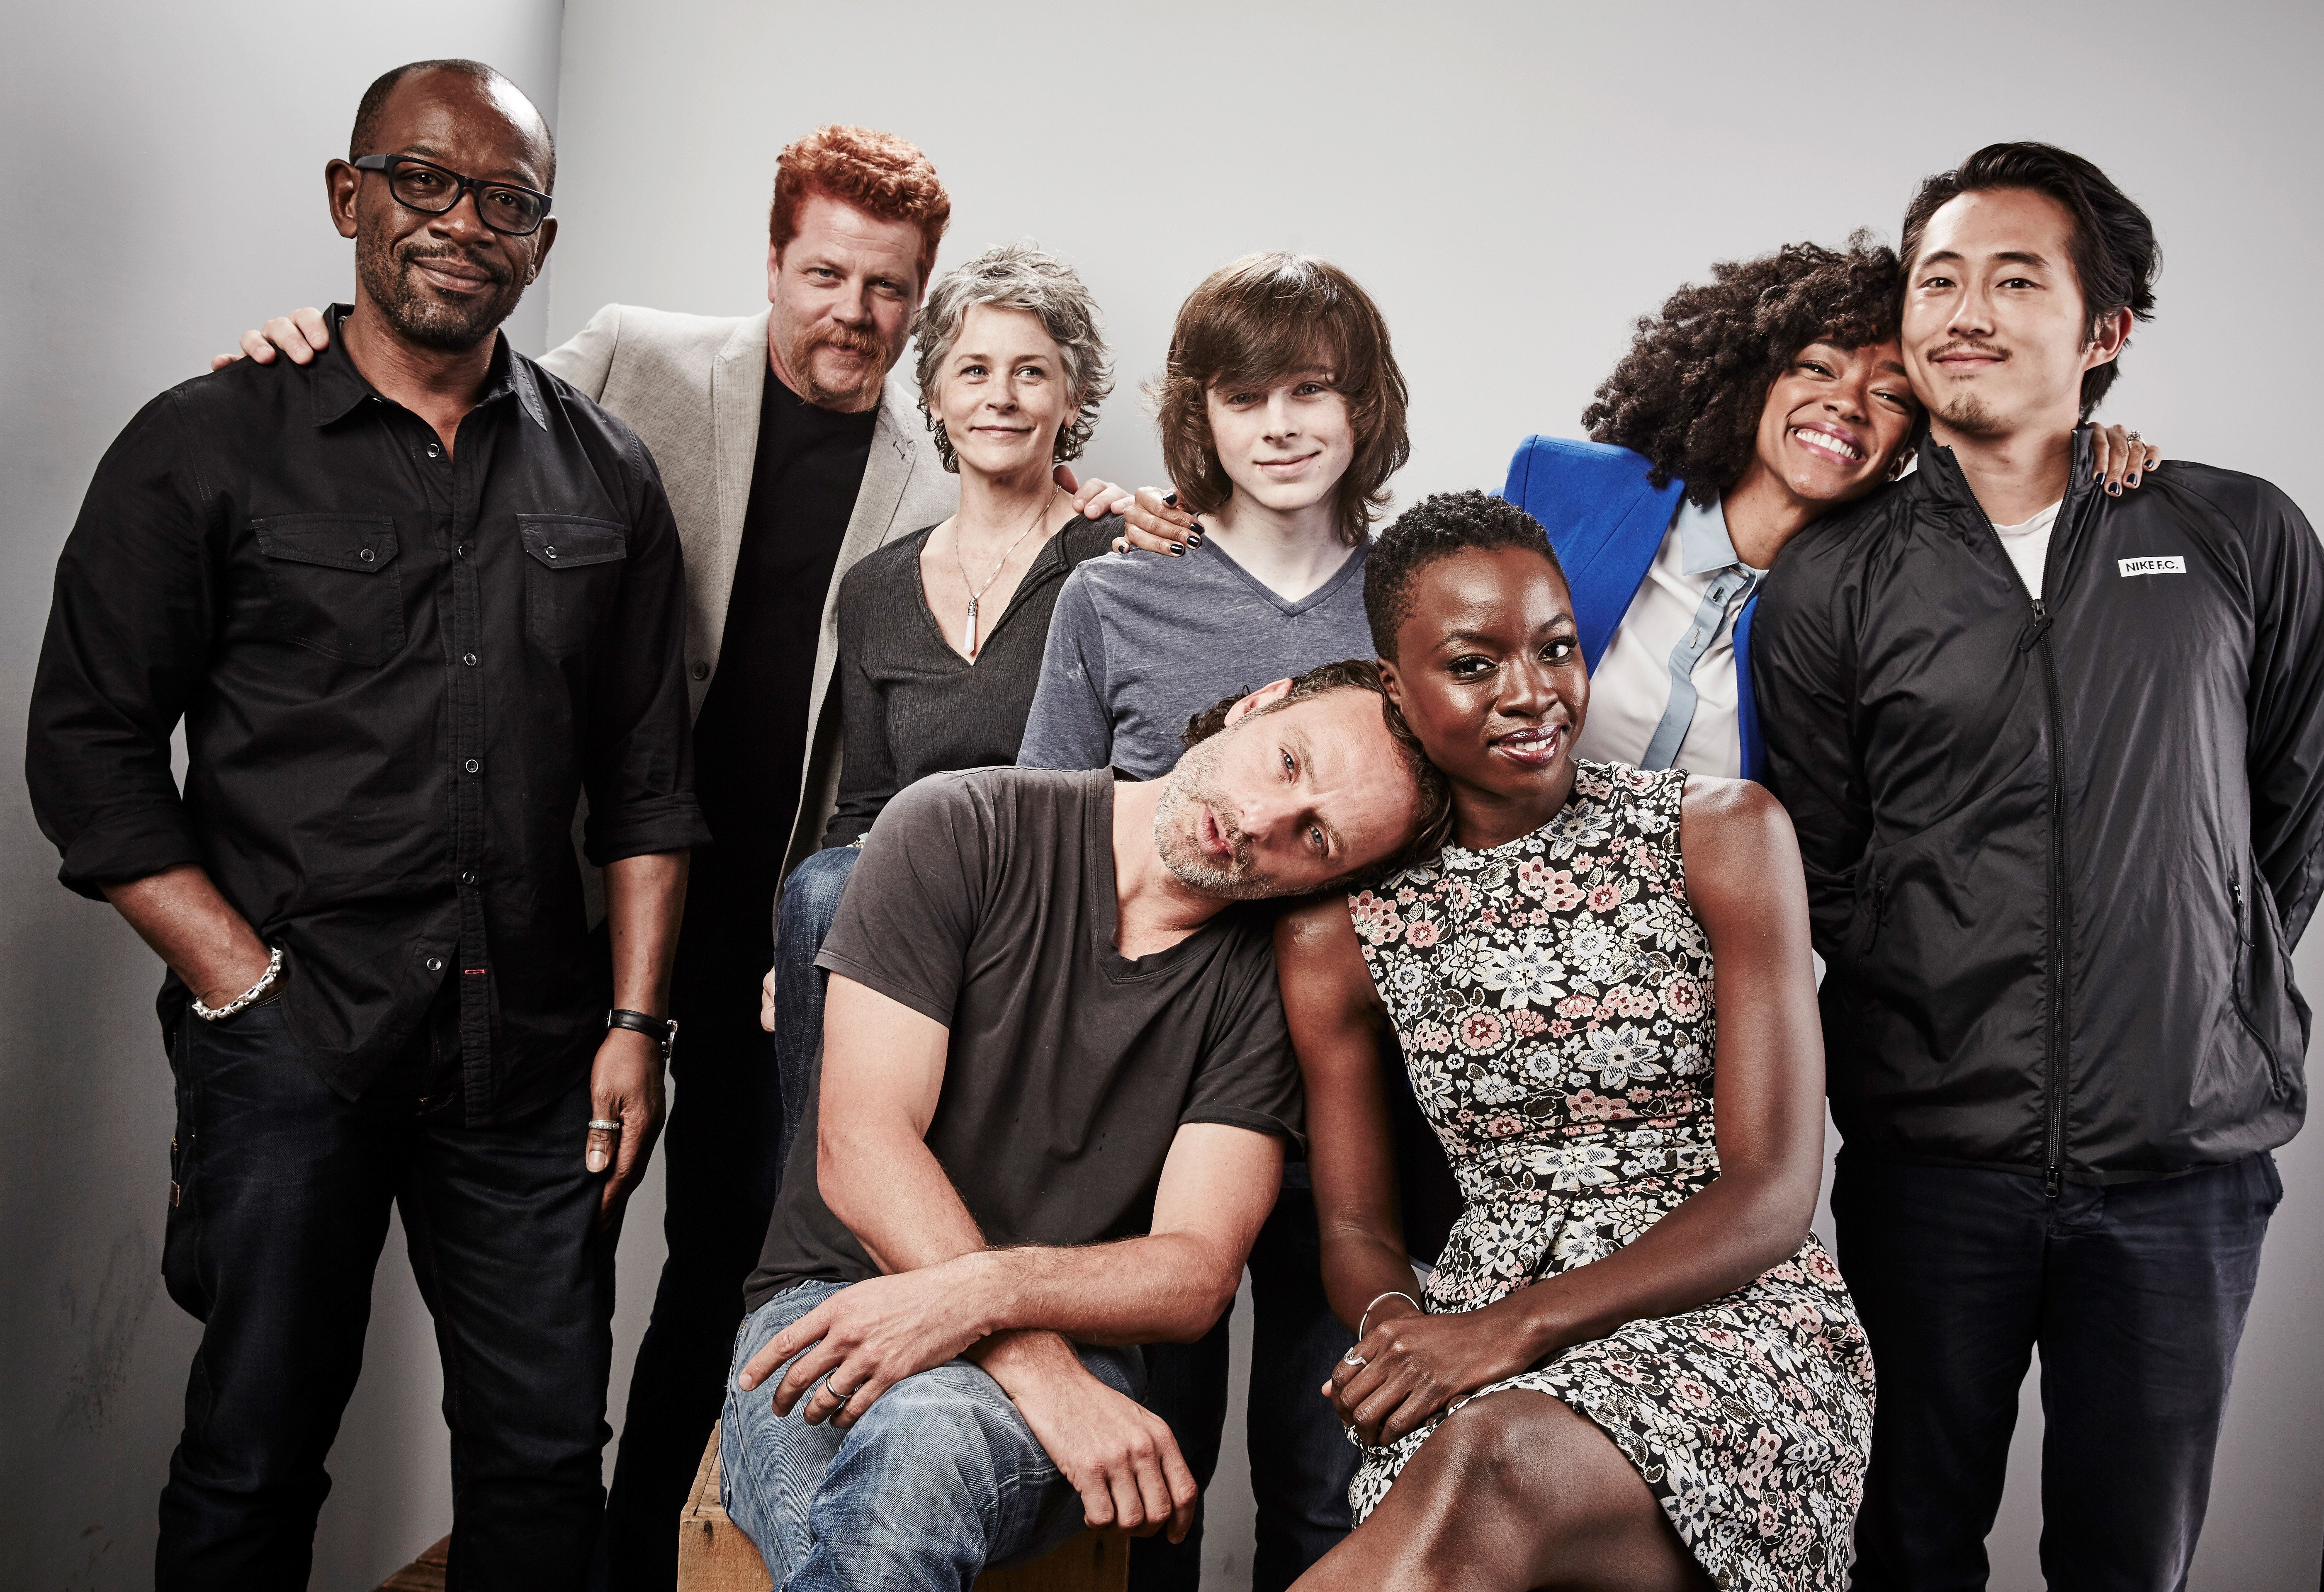 SAN DIEGO, CA - JULY 11:  (L-R) Actors Lennie James, Michael Cudlitz, Melissa McBride, Andrew Lincoln, Chandler Riggs, Danai Gurira, Sonequa Martin-Green, and Steven Yeun of 'The Walking Dead' pose for a portrait at the Getty Images Portrait Studio Powered By Samsung Galaxy At Comic-Con International 2015 at Hard Rock Hotel San Diego on July 11, 2015 in San Diego, California.  (Photo by Maarten de Boer/Getty Images)